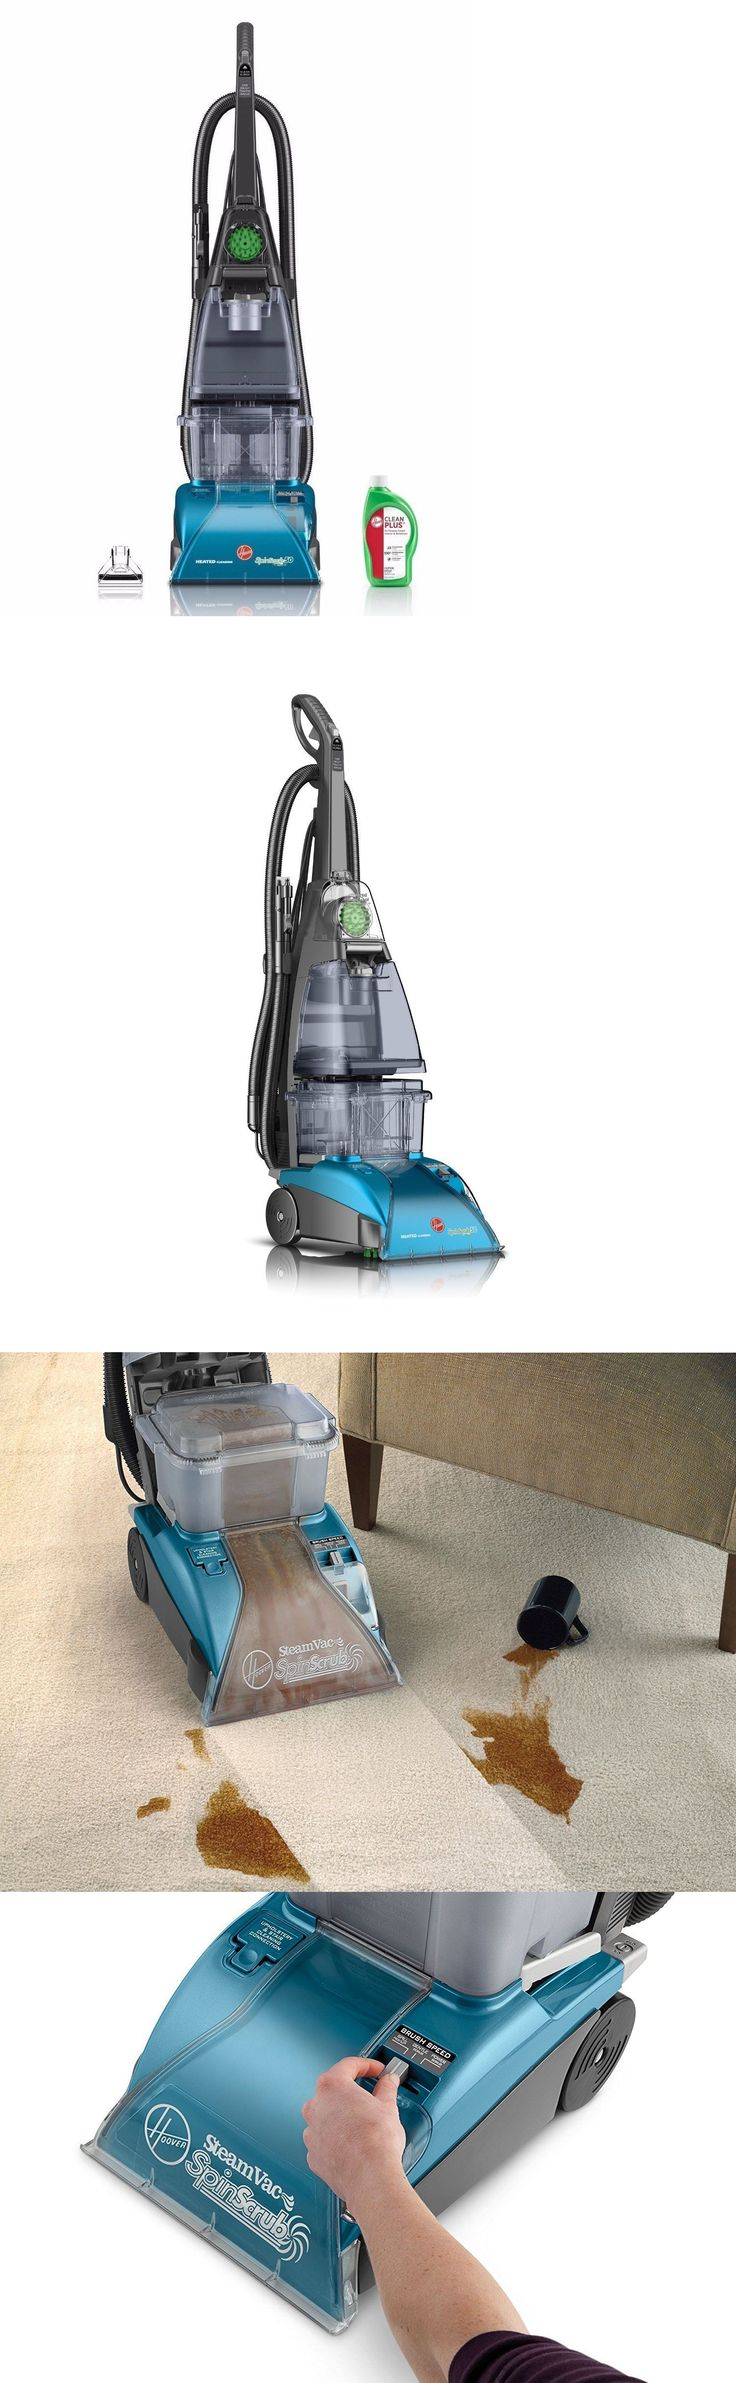 Carpet Steamers 79656: Carpet Cleaner Machine F5914900 Hoover Steamvac With Clean Surge Household New -> BUY IT NOW ONLY: $173.46 on eBay!